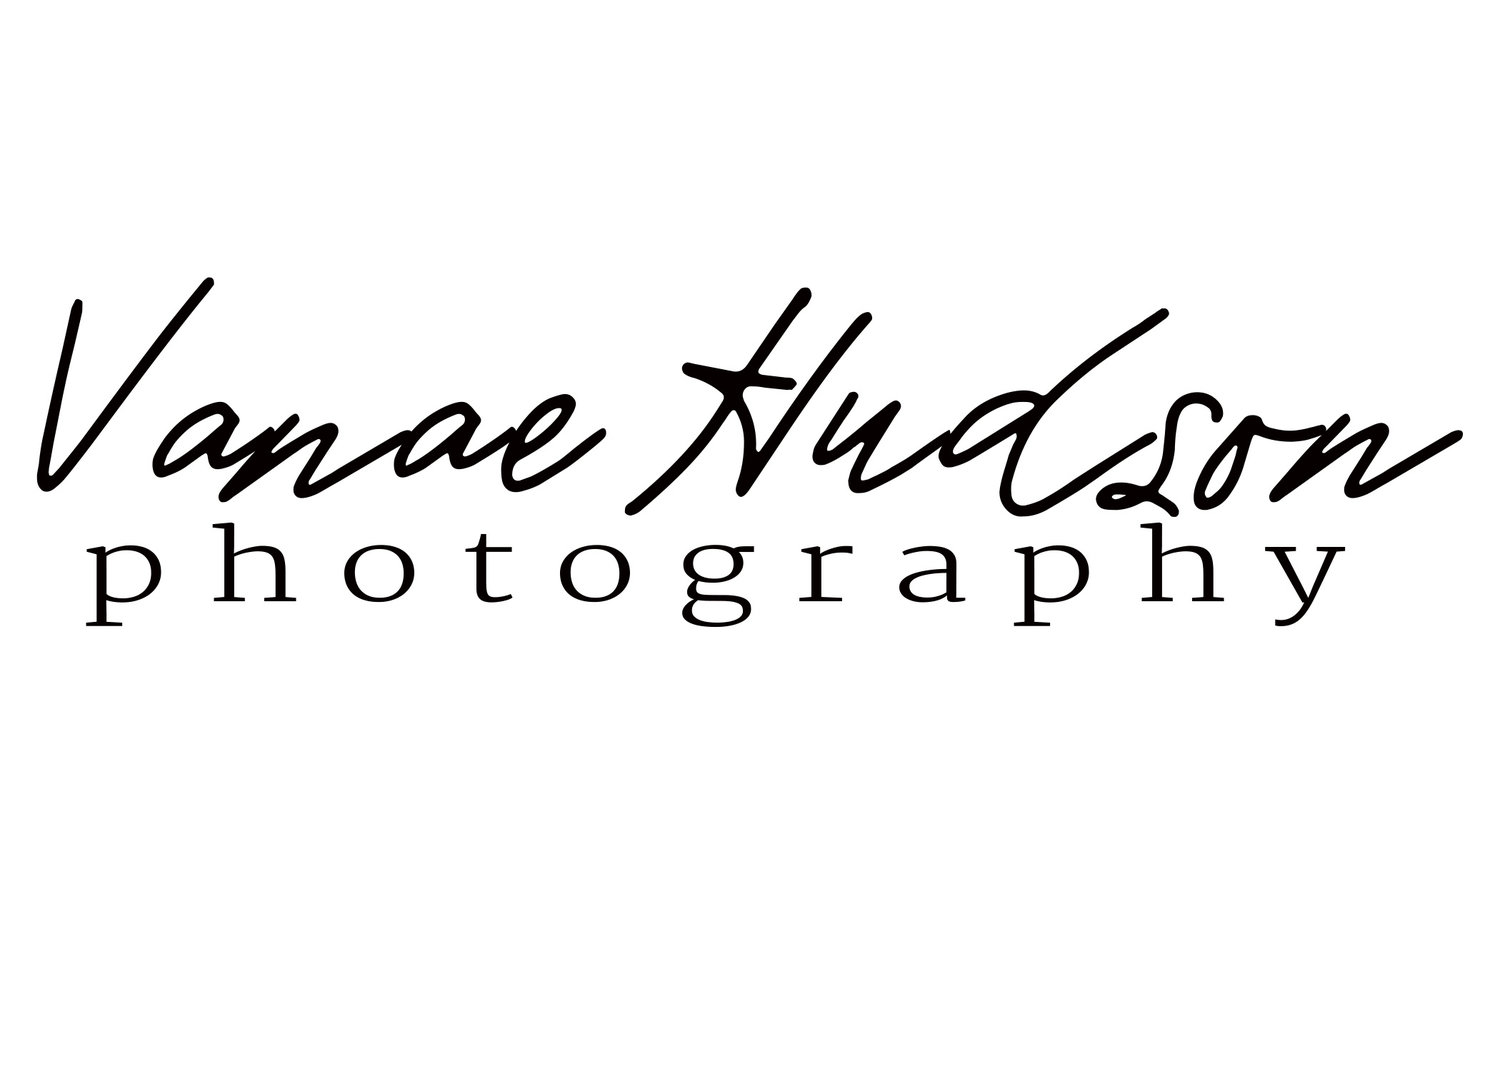 Vanae Hudson Photography